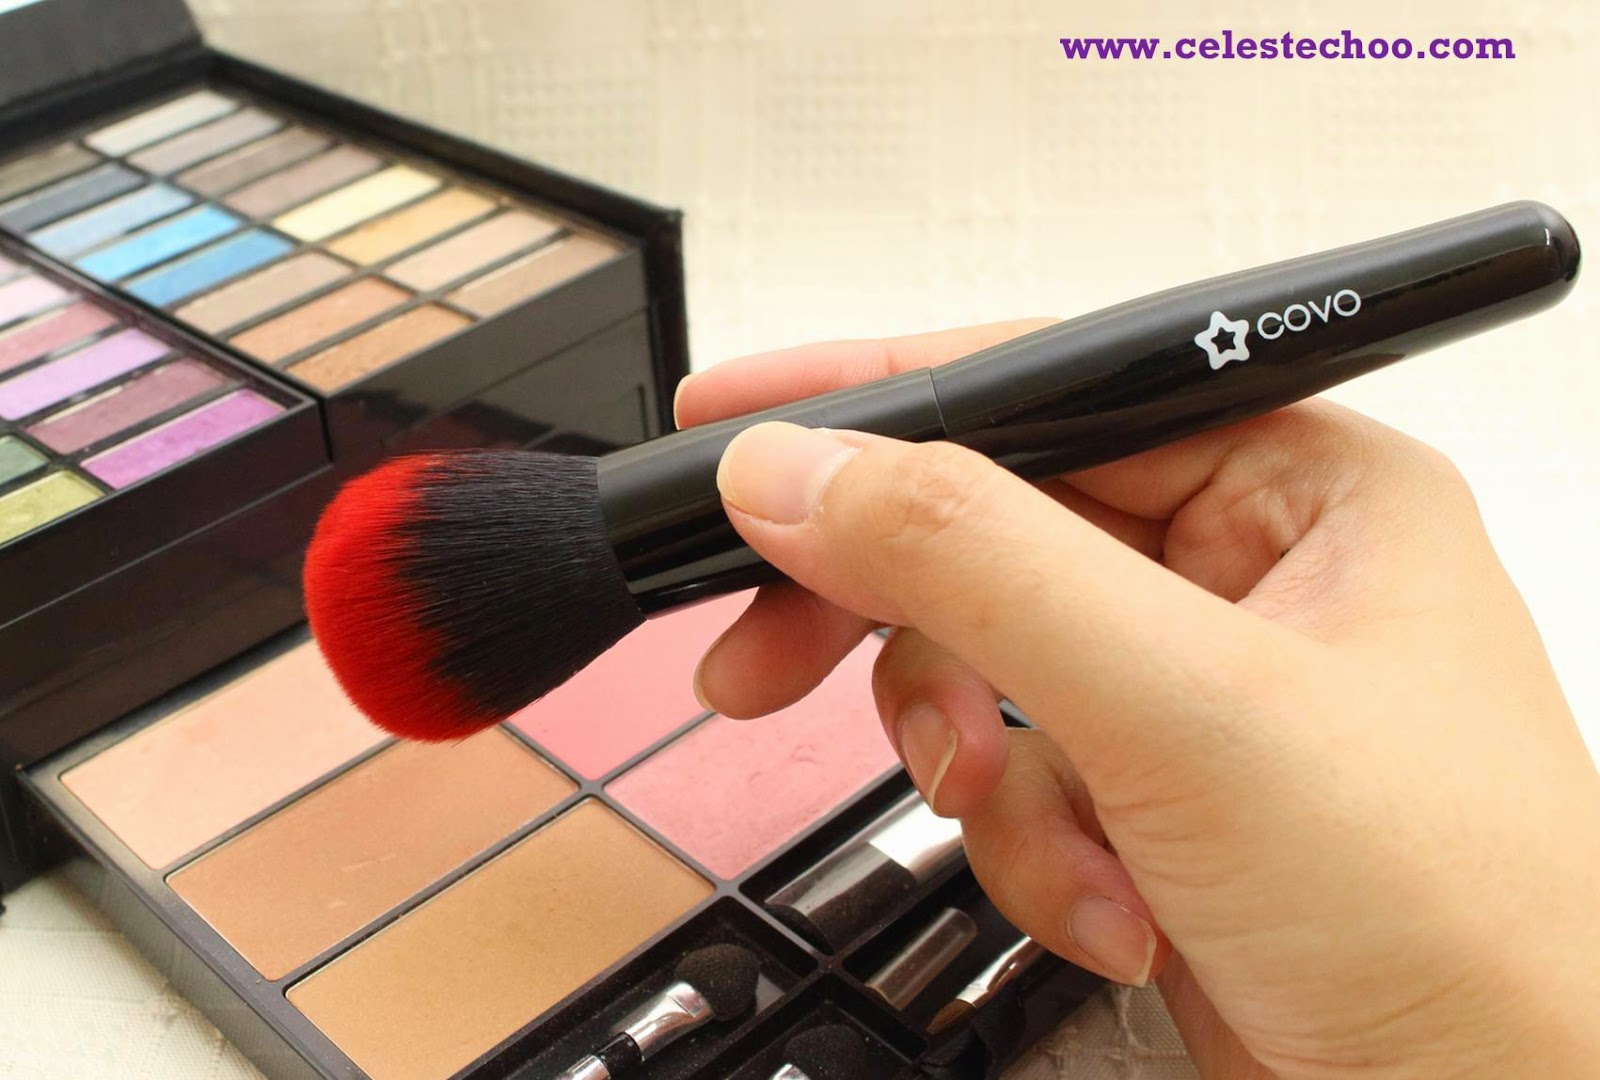 covo-cosmetics-powder-foundation-makeup-brush